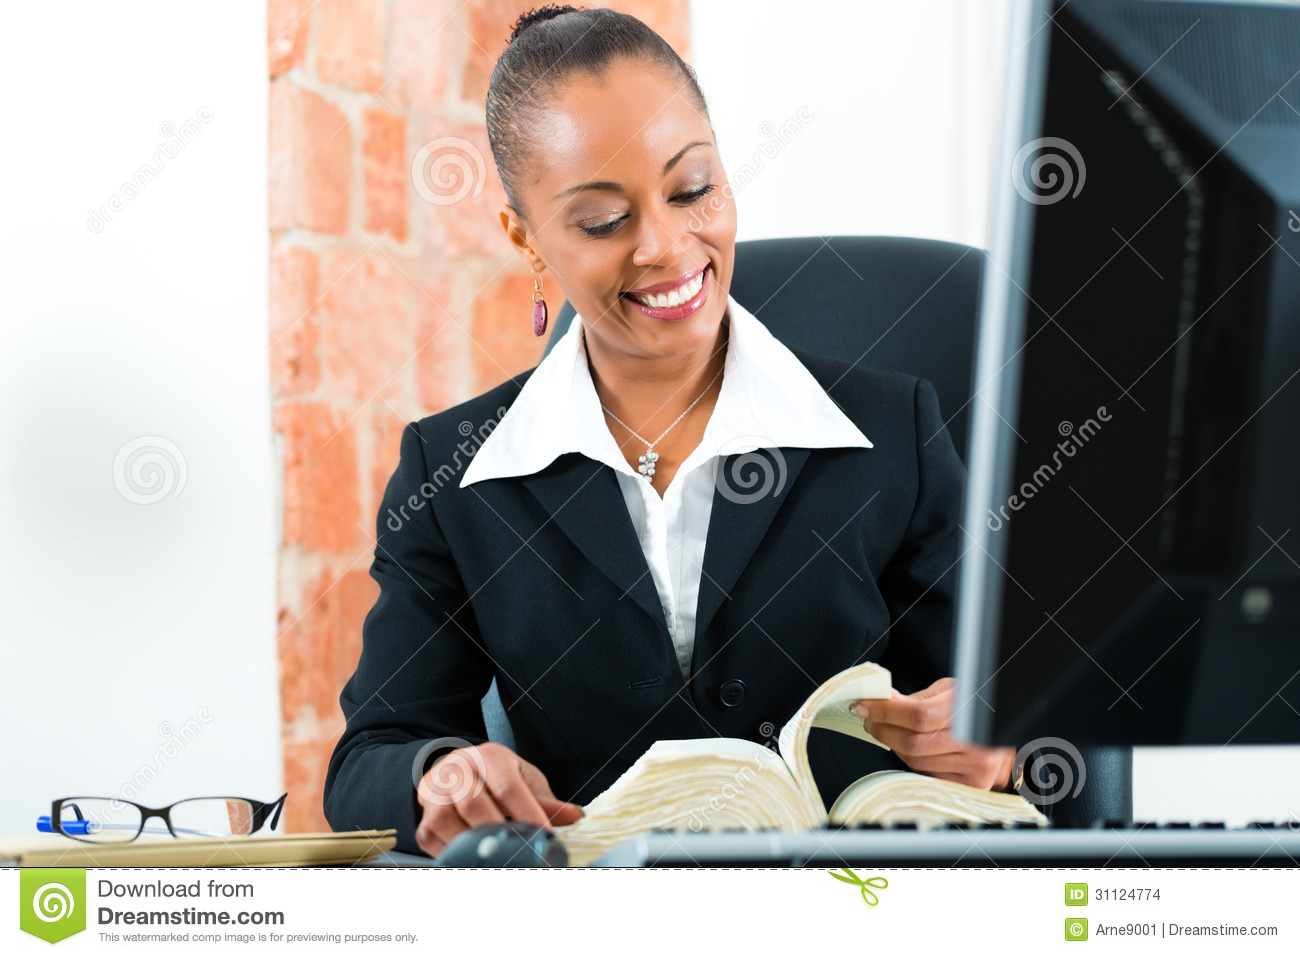 Lawyer In Office With Law Book And Computer Stock Photo